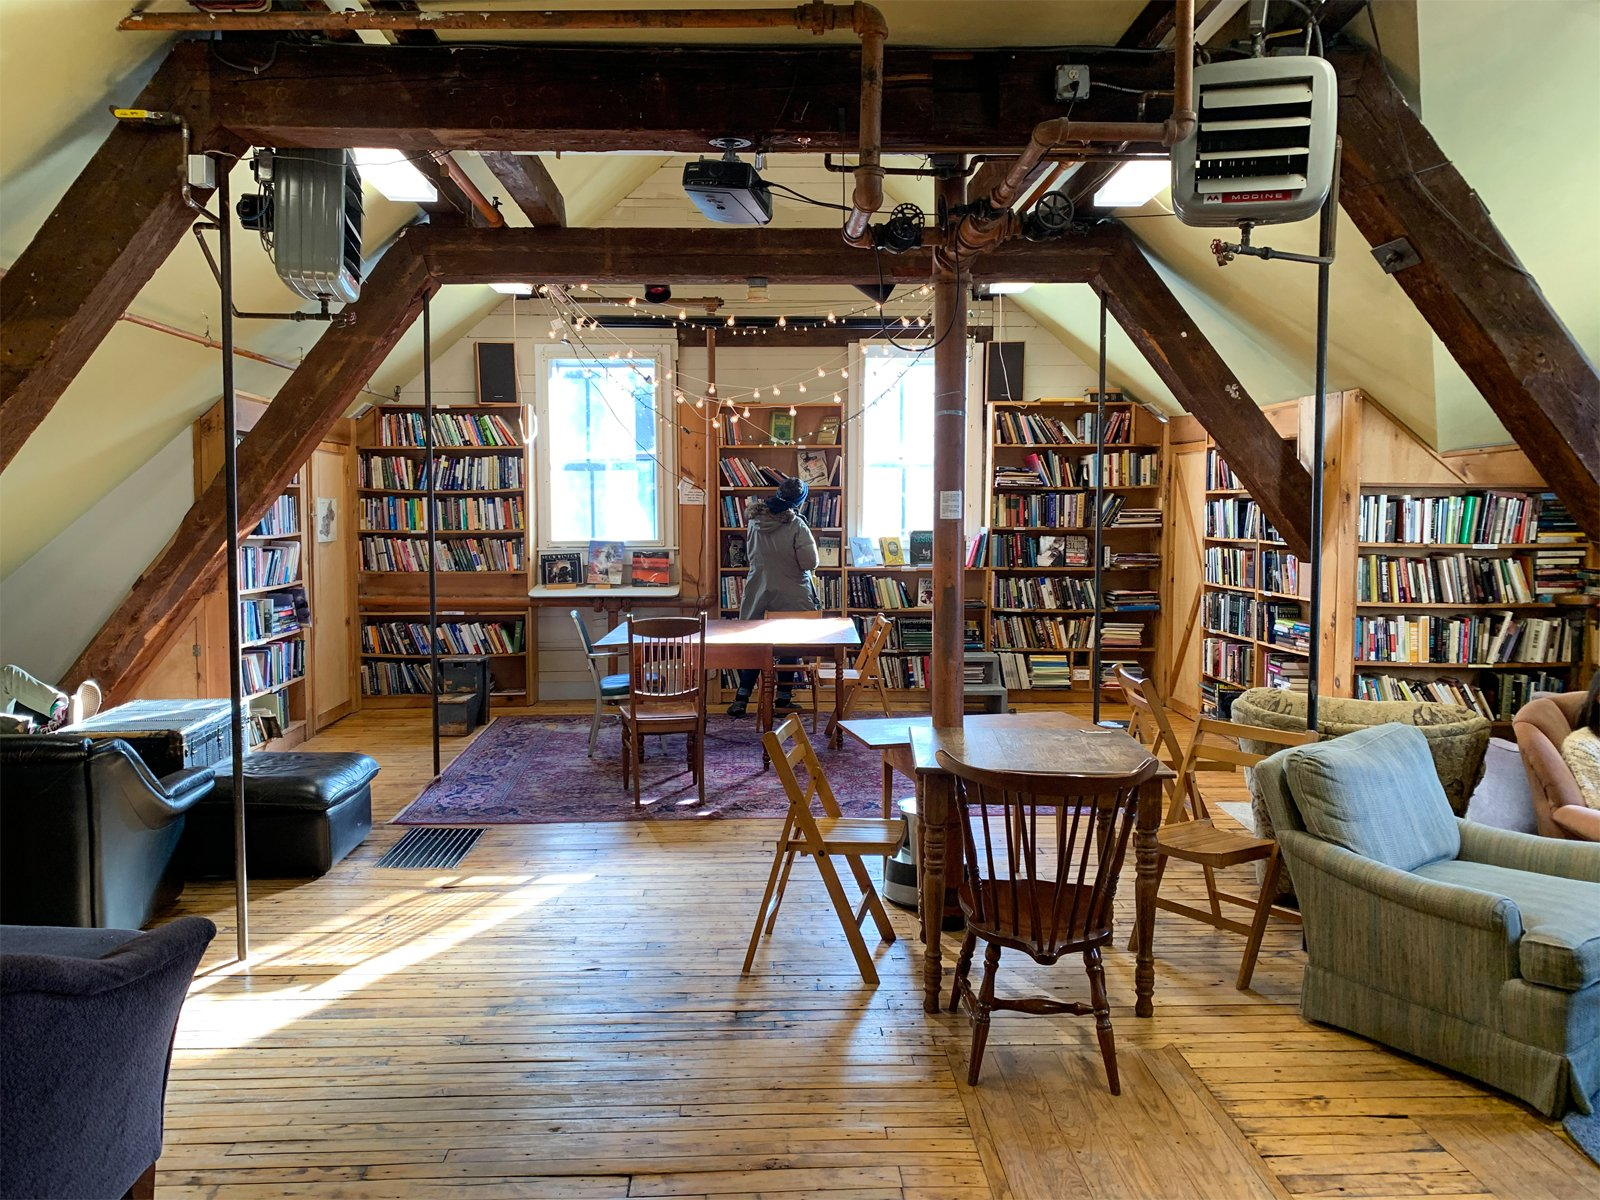 a room in the Montague Bookmill in Montague, Massachusetts